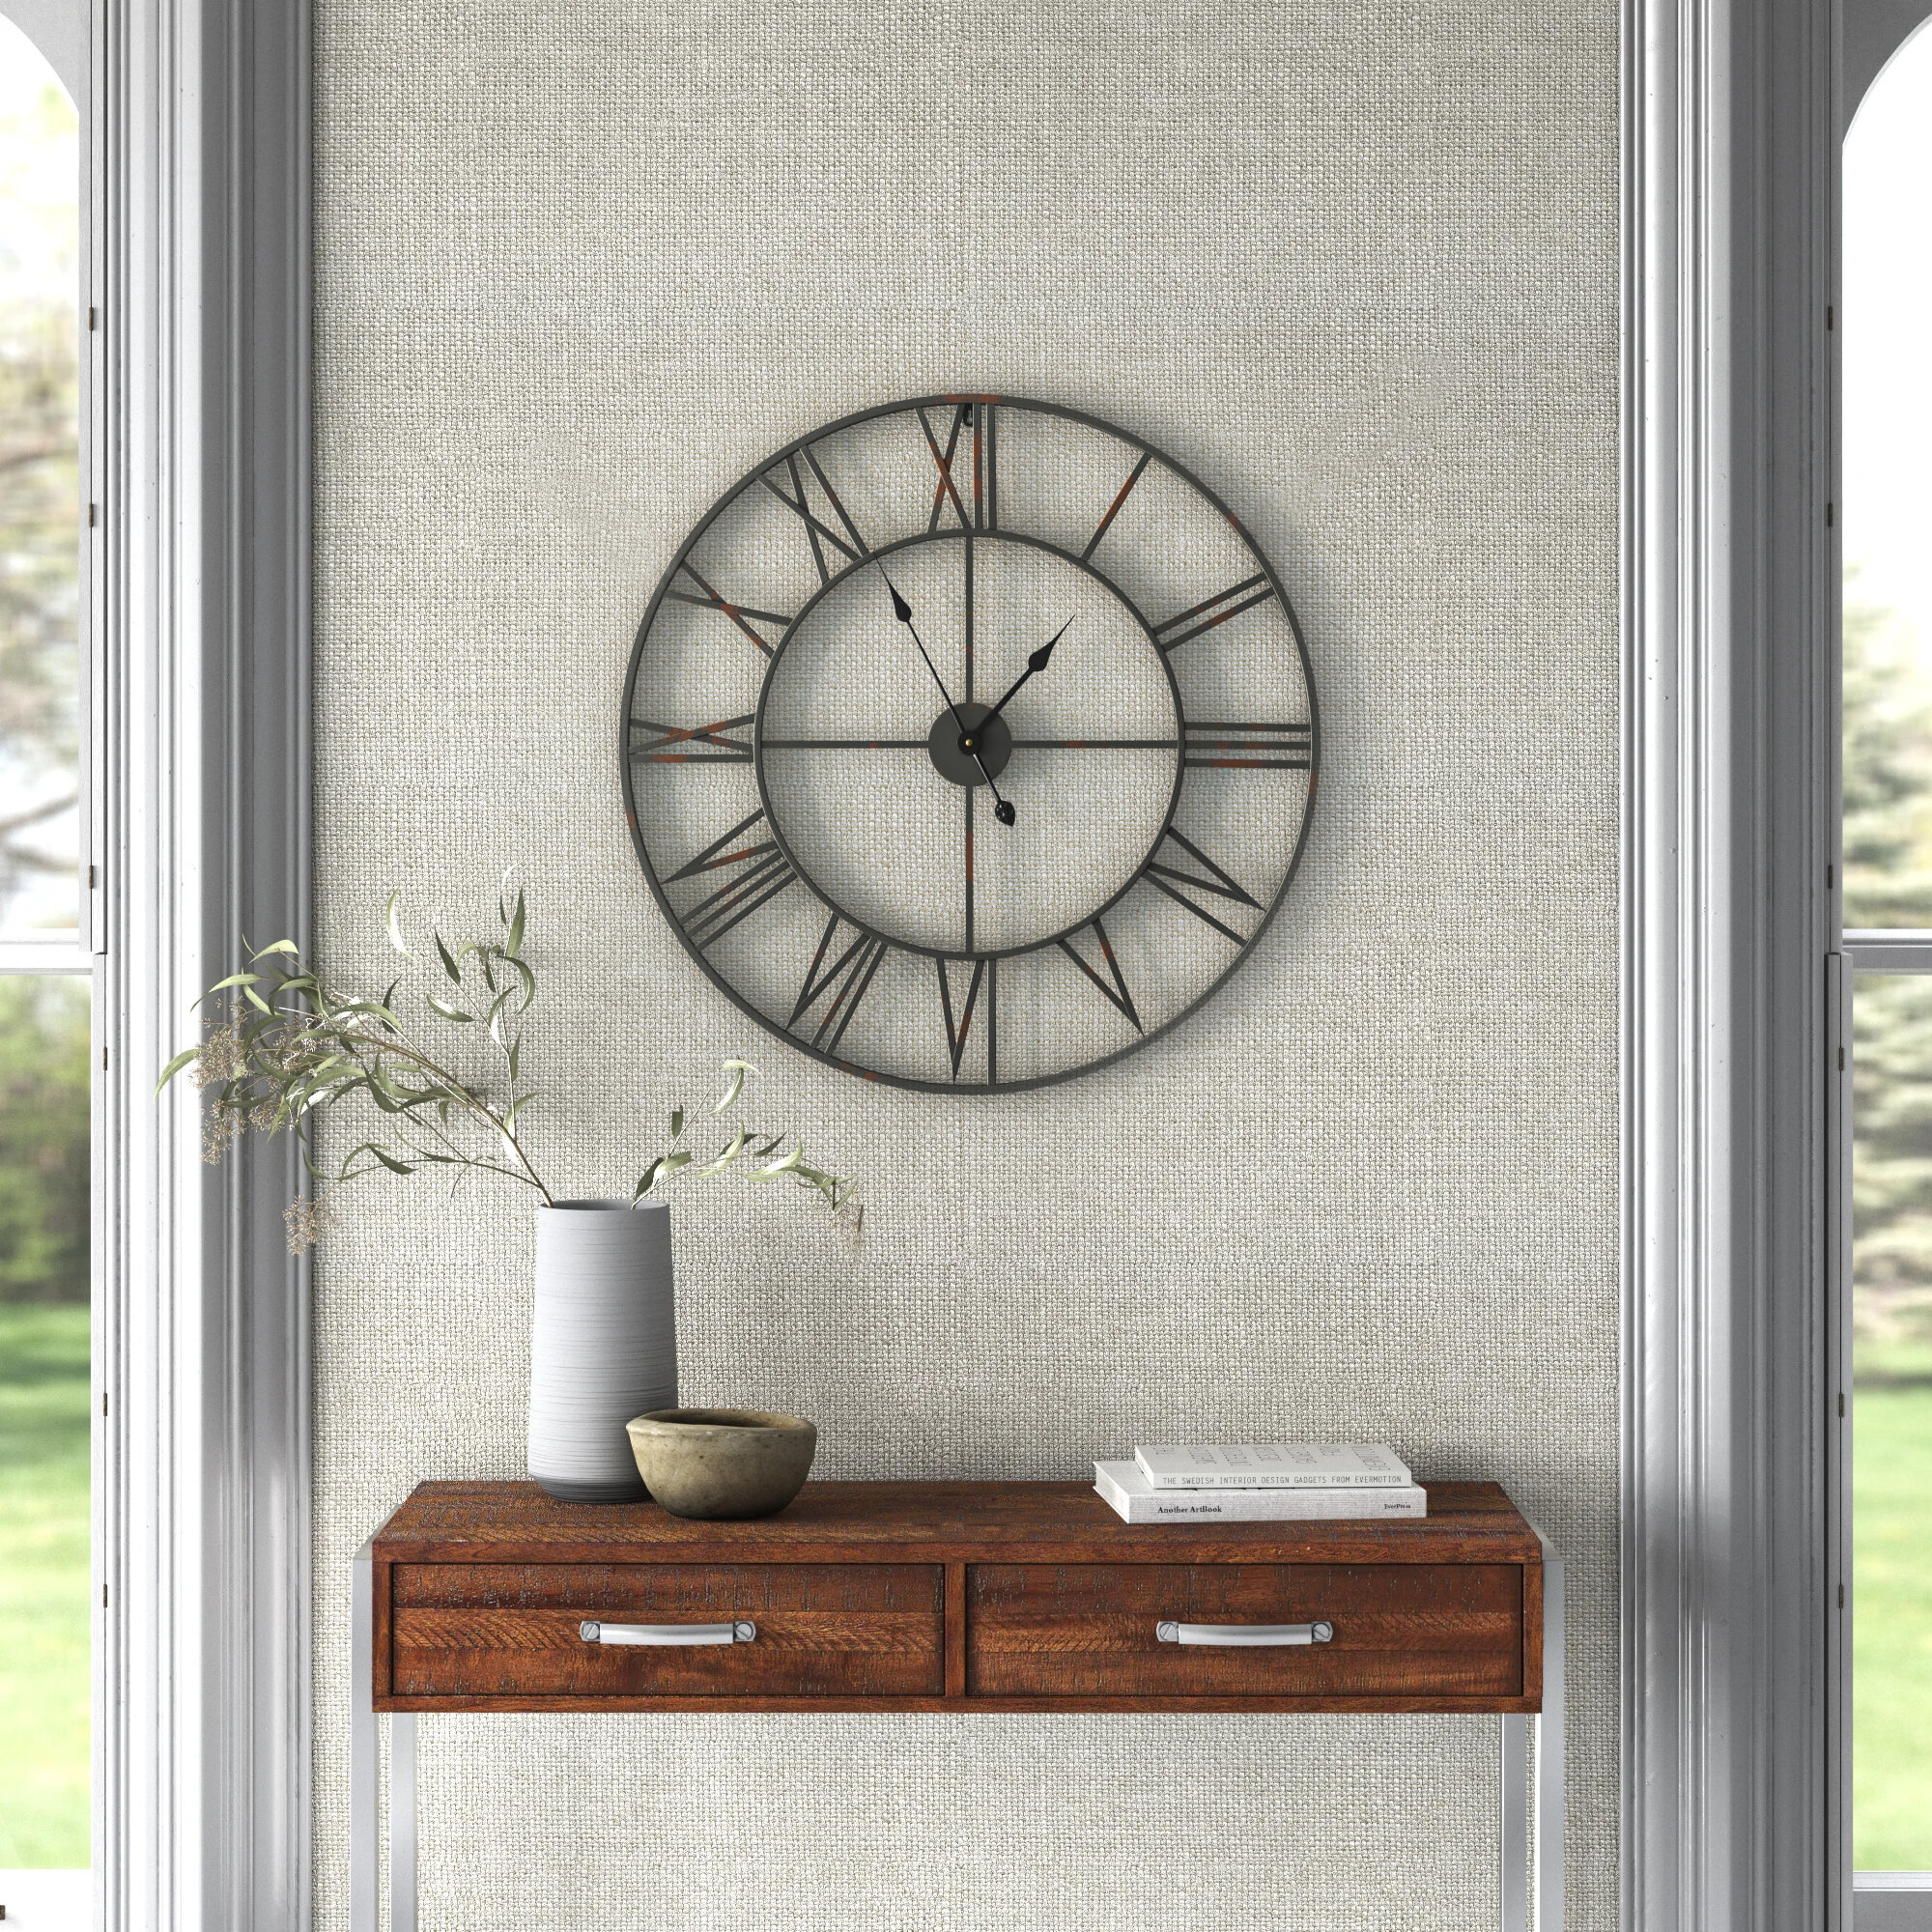 Modern Contemporary Oversized Wall Clocks You Ll Love In 2021 Wayfair